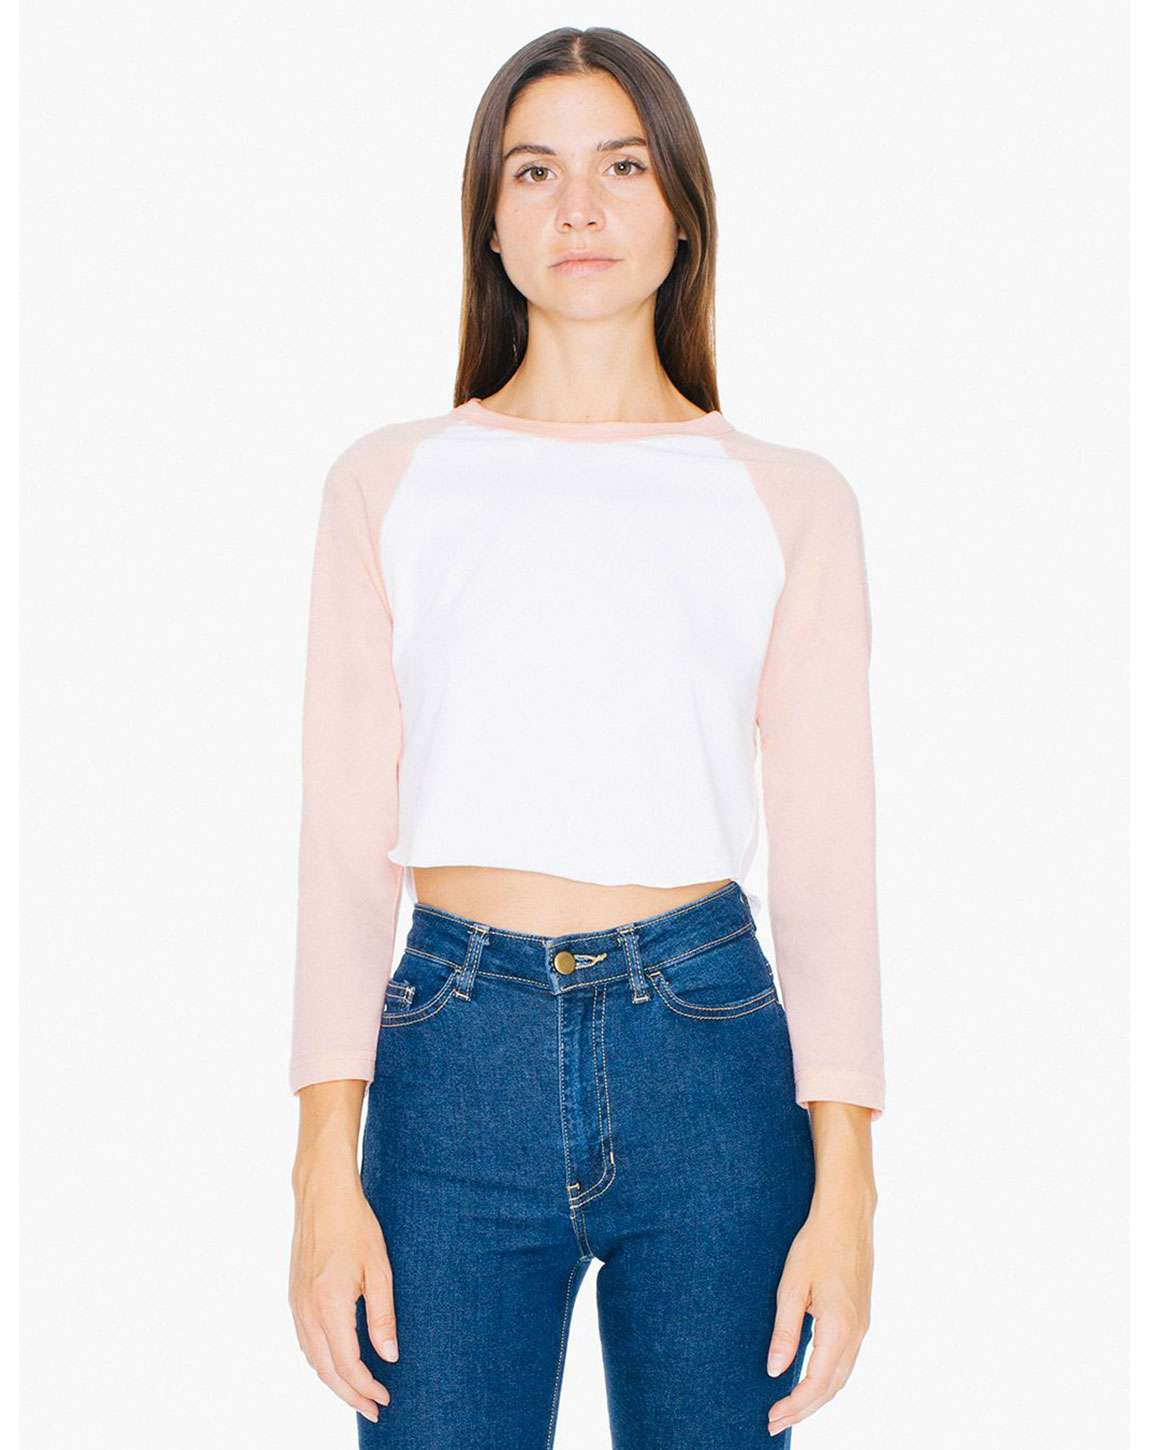 American Apparel ABB354W Ladies Poly-Cotton 3-Quarter-Sleeve Cropped T-Shirt